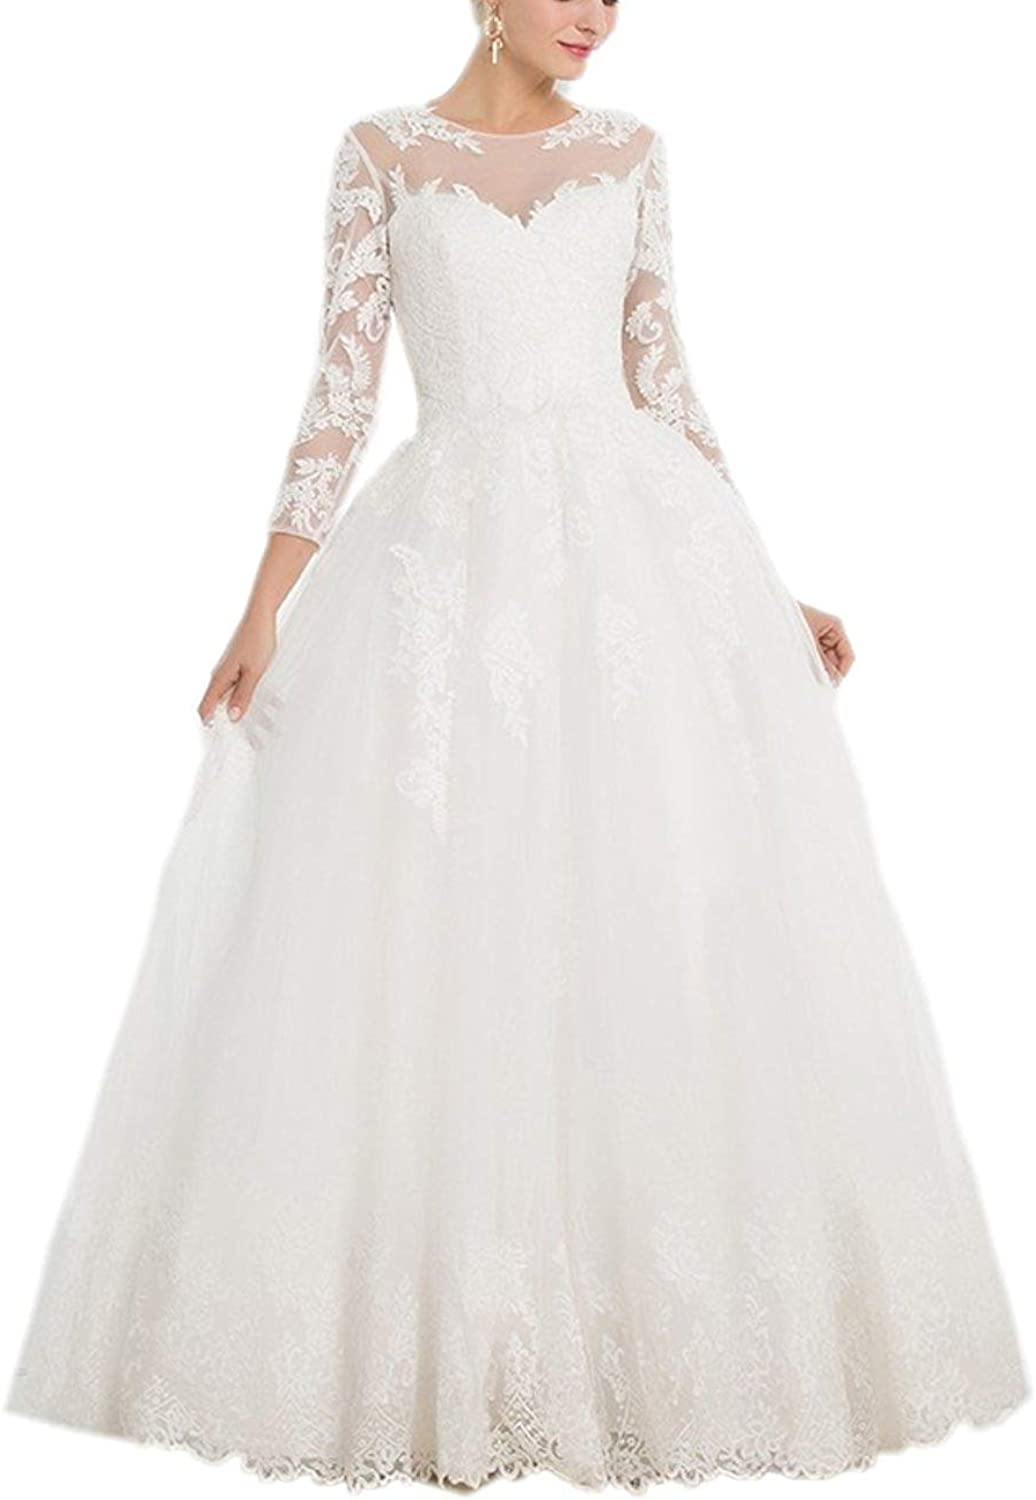 Alexzendra Ball Gown Wedding Dress for Bride 2019 Bride Dress with Sleeves Applique